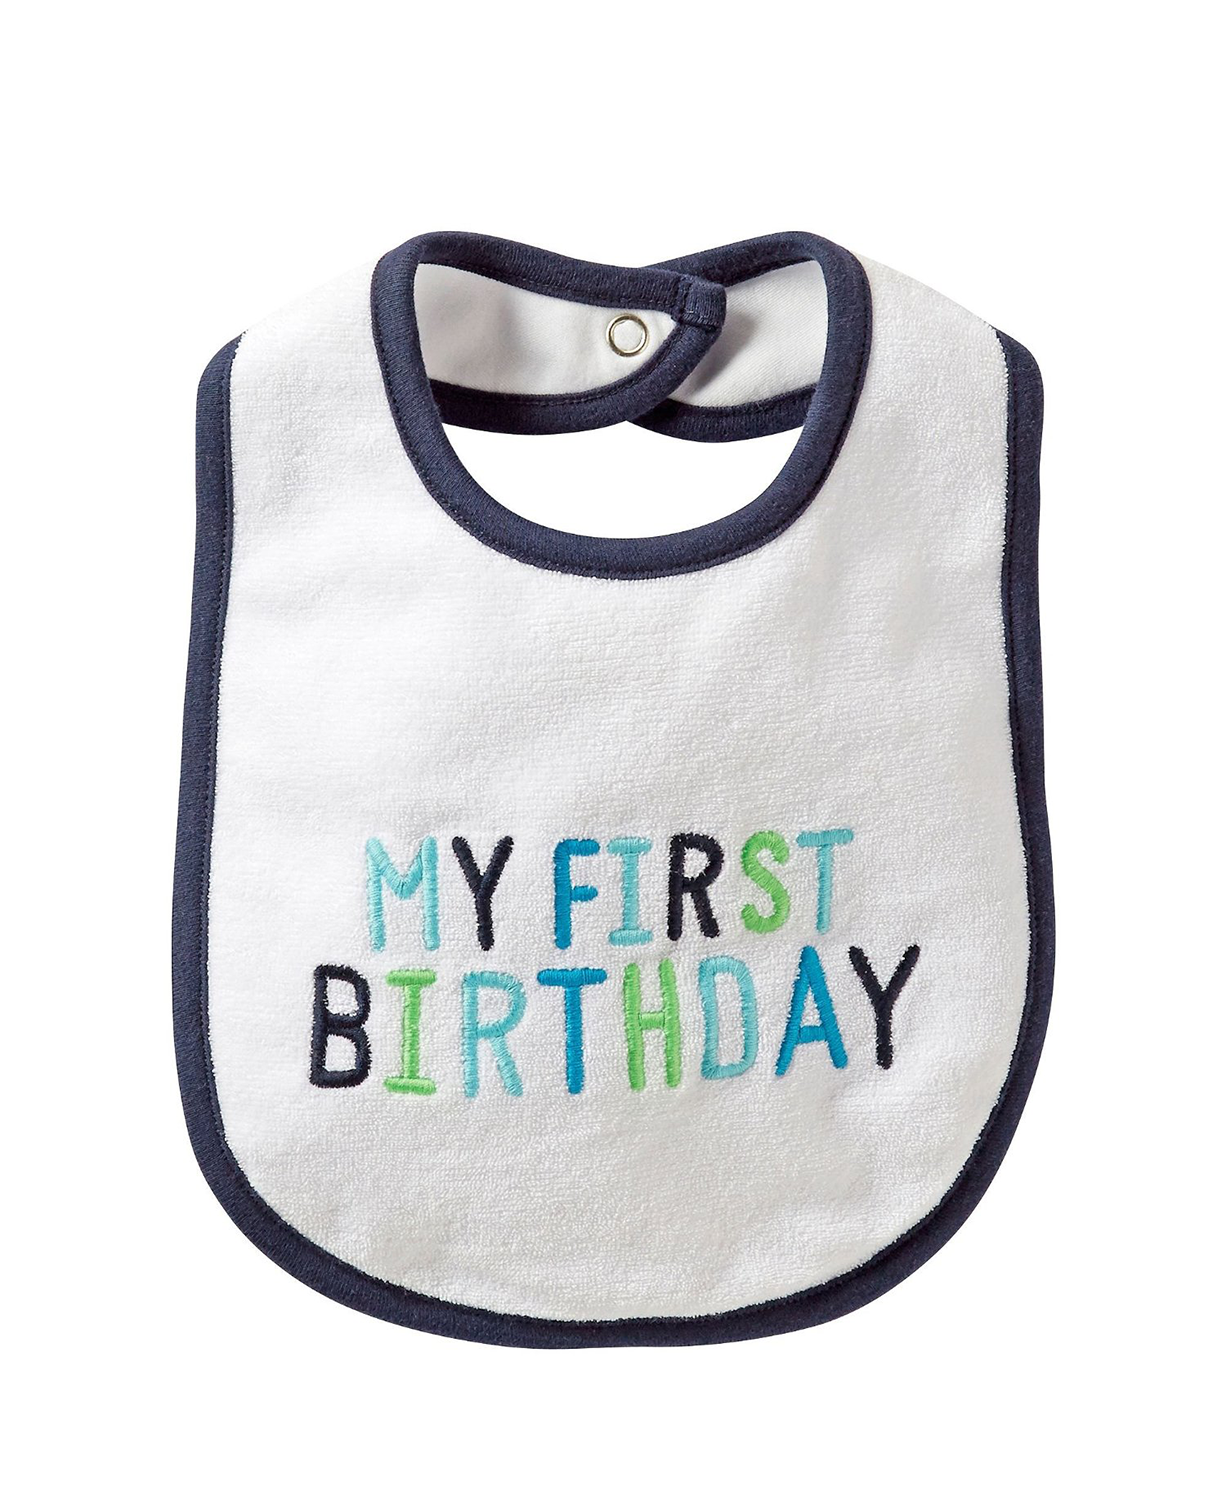 Cute Carter's 'My 1st Birthday' Baby Bibs (Baby) One Size